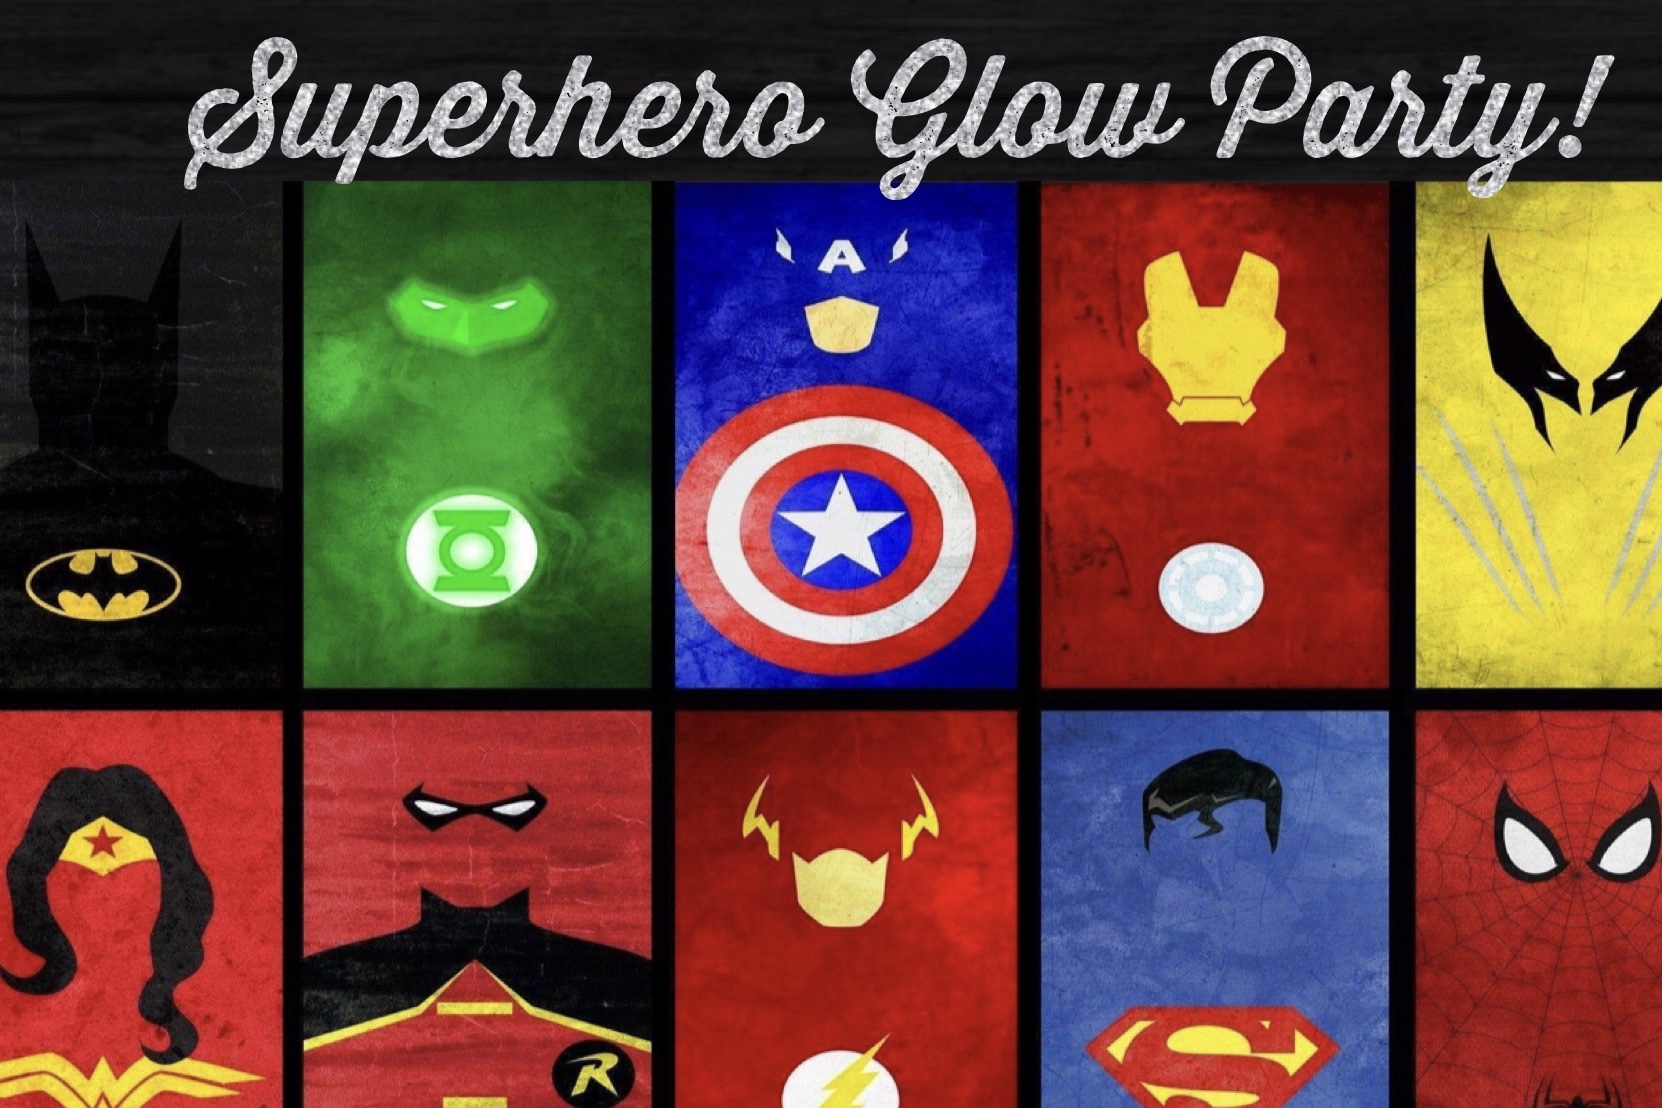 Superhero Glow Party!!